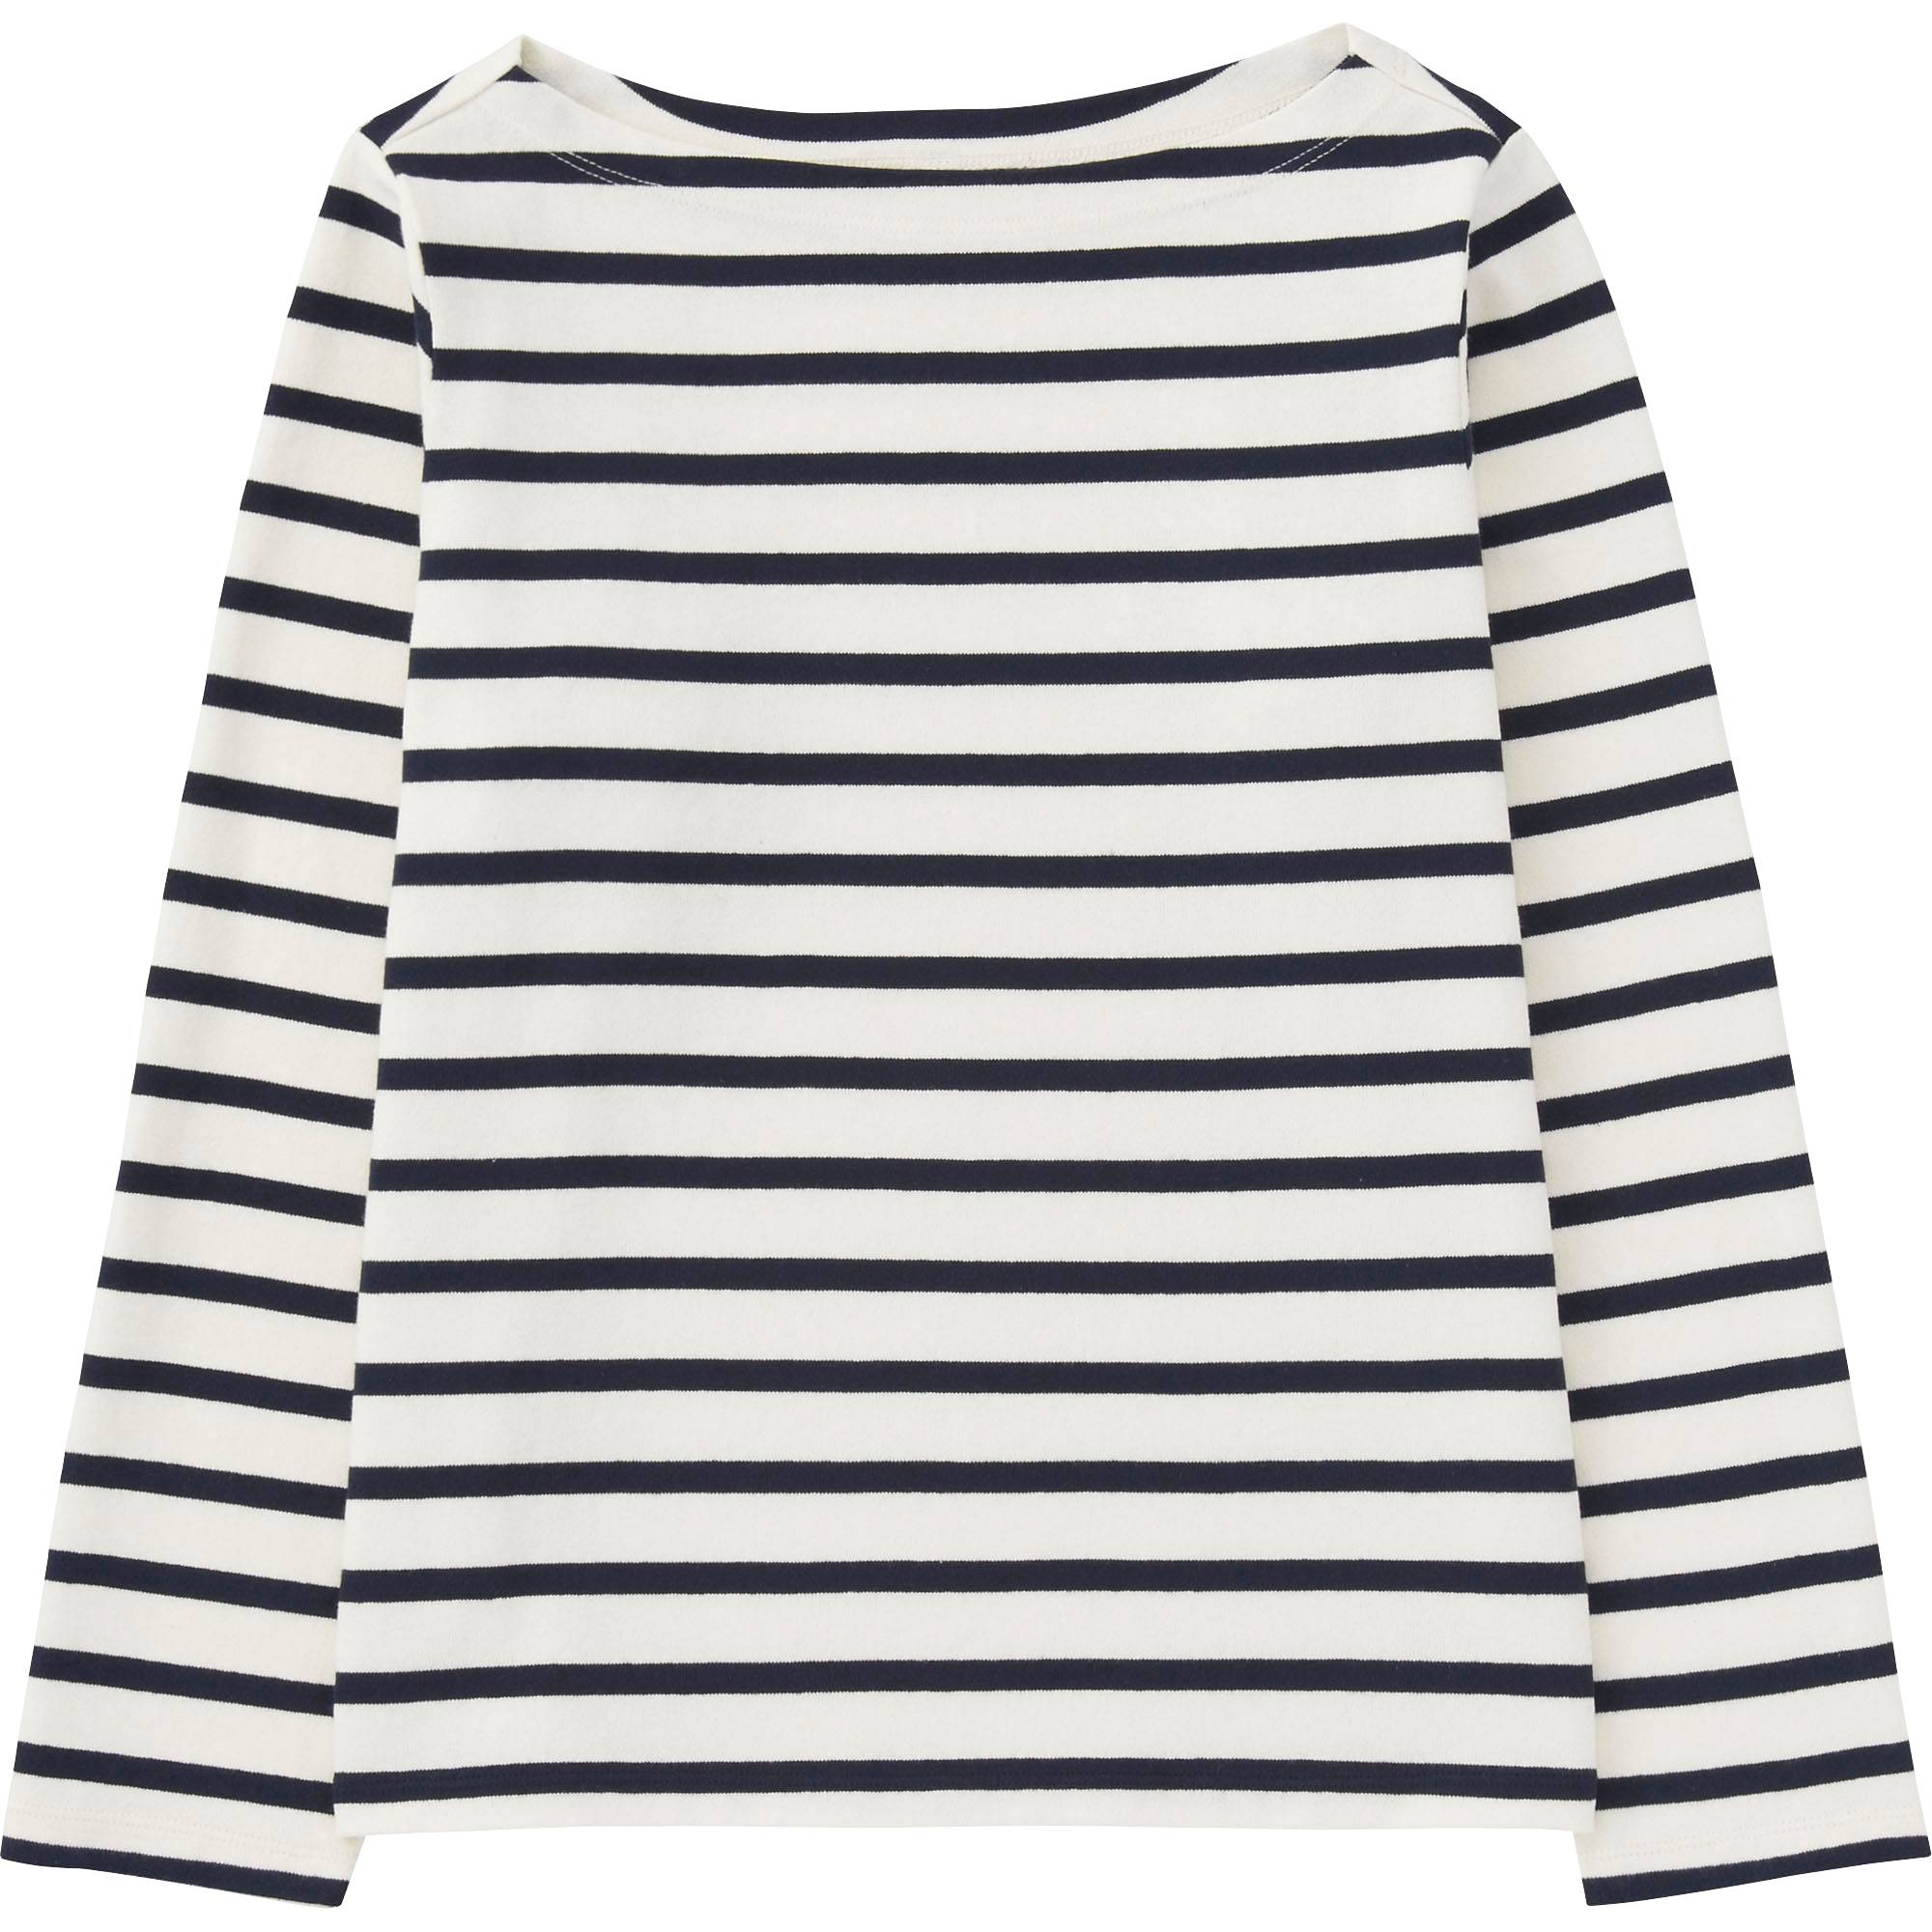 Black and white striped t shirt xxl - Women Striped Boat Neck Long Sleeve T Shirt Blue Small